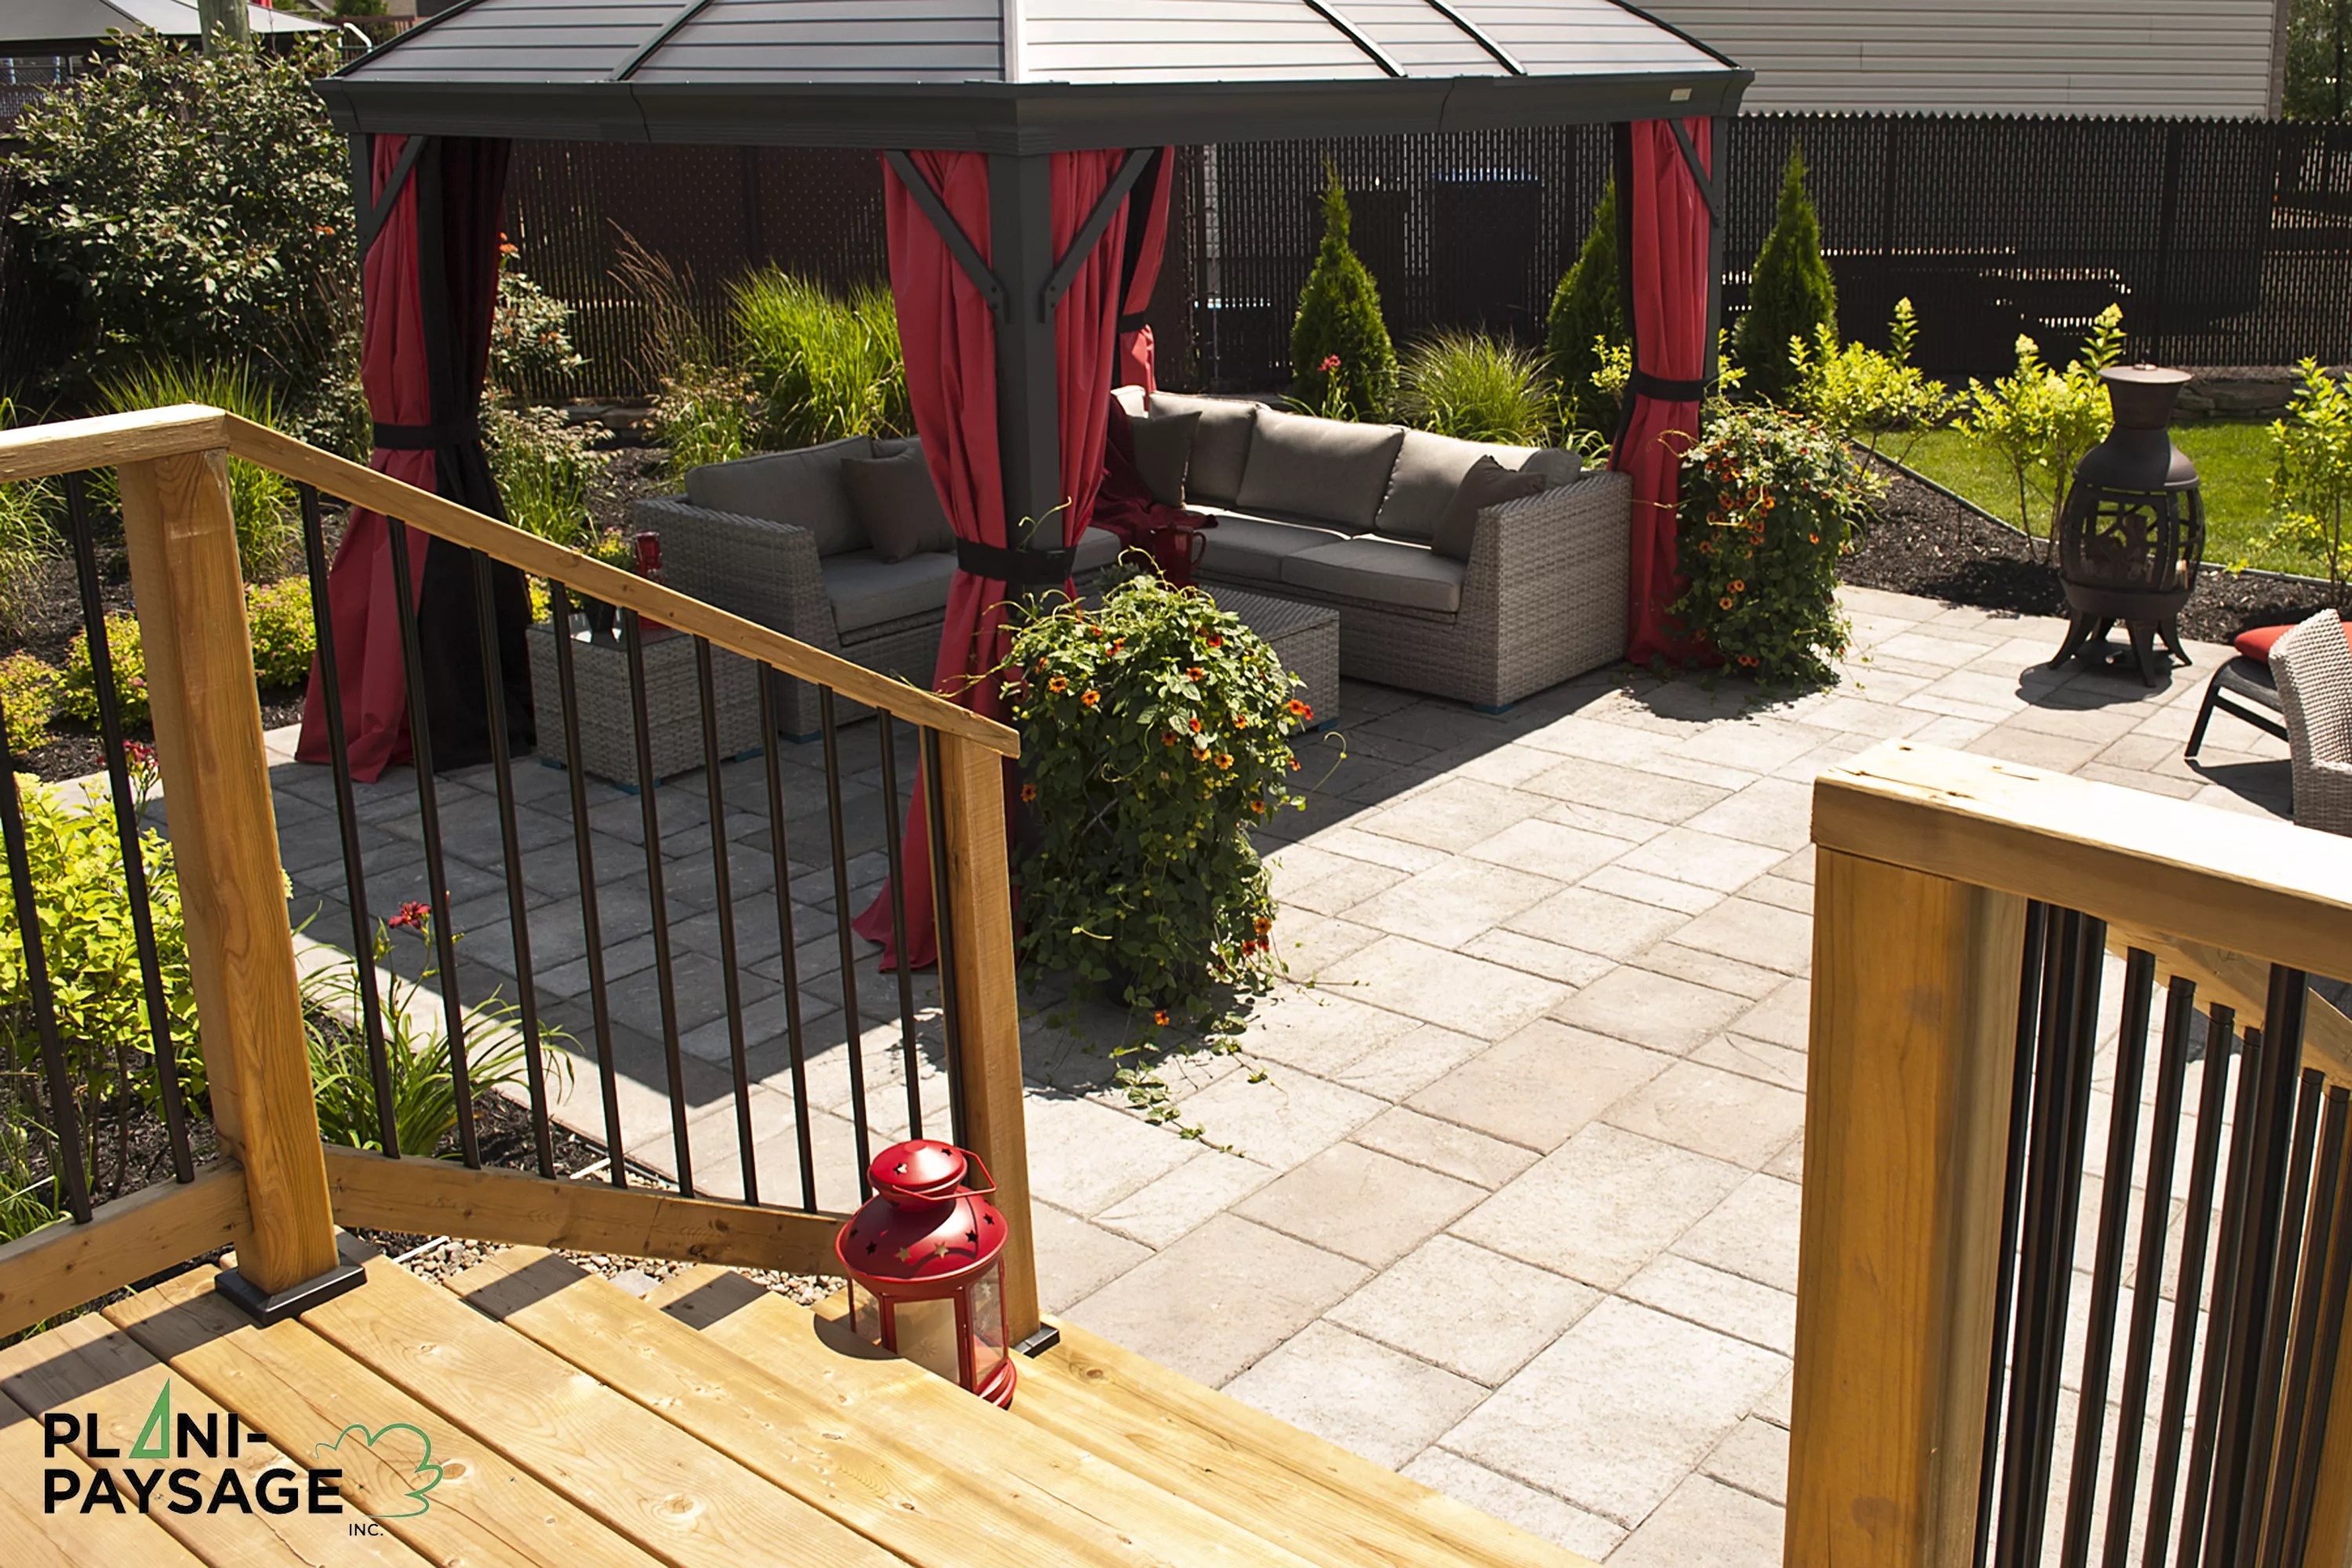 Amenagement Terrasse Bois Et Pergola Terrasse En Bois Sur Patio En Dalle